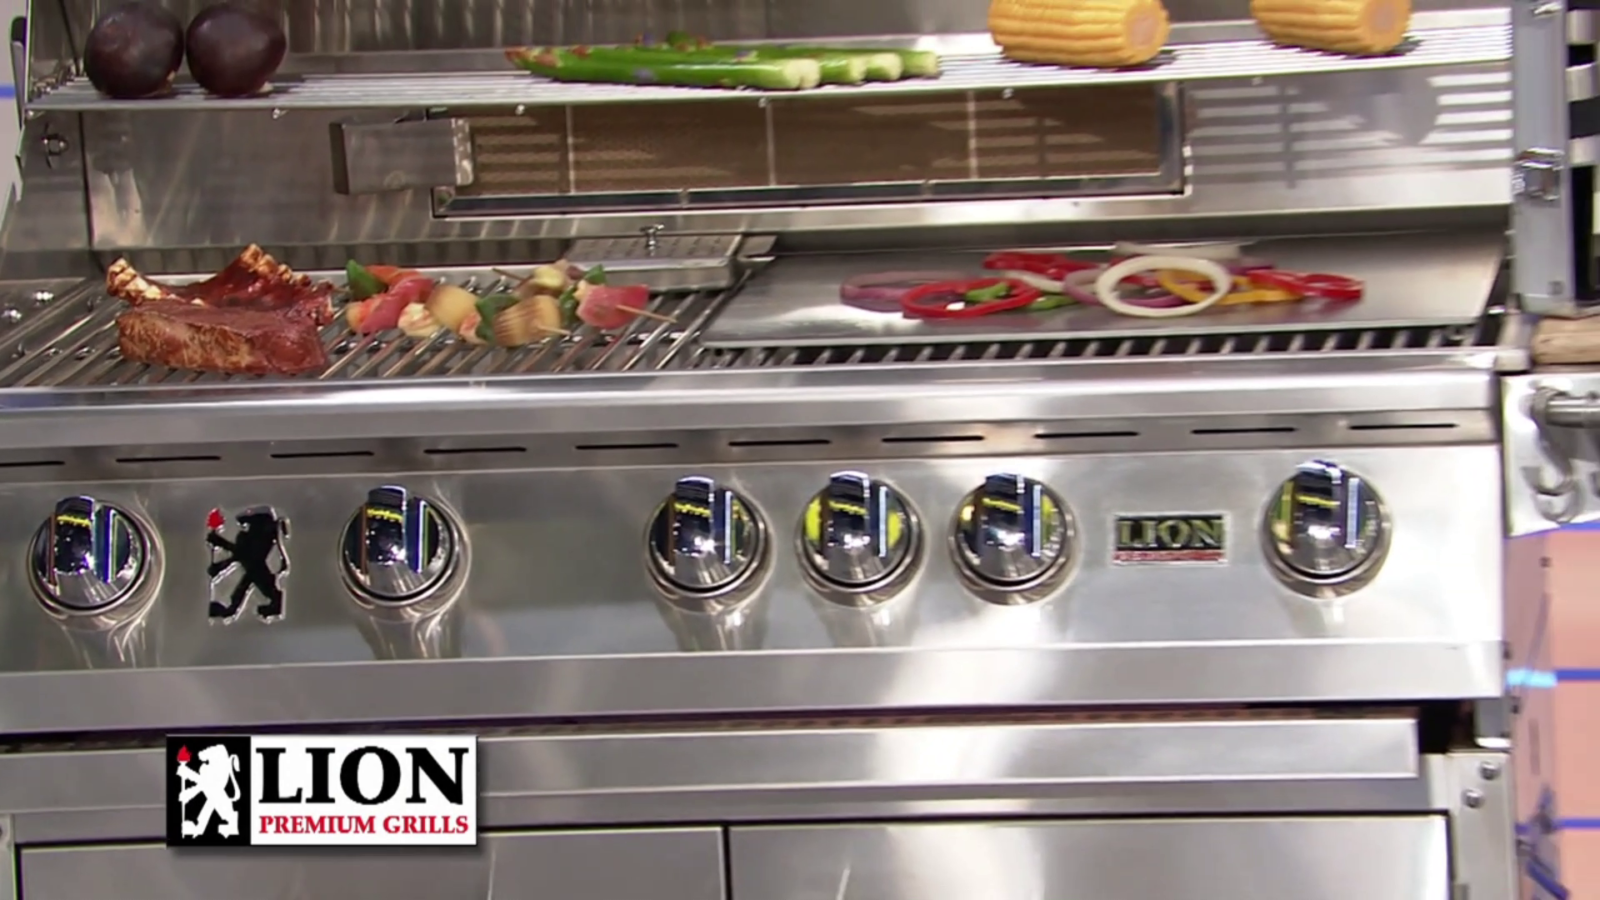 Lion Grills - Grill Close Up with Griddle Plate